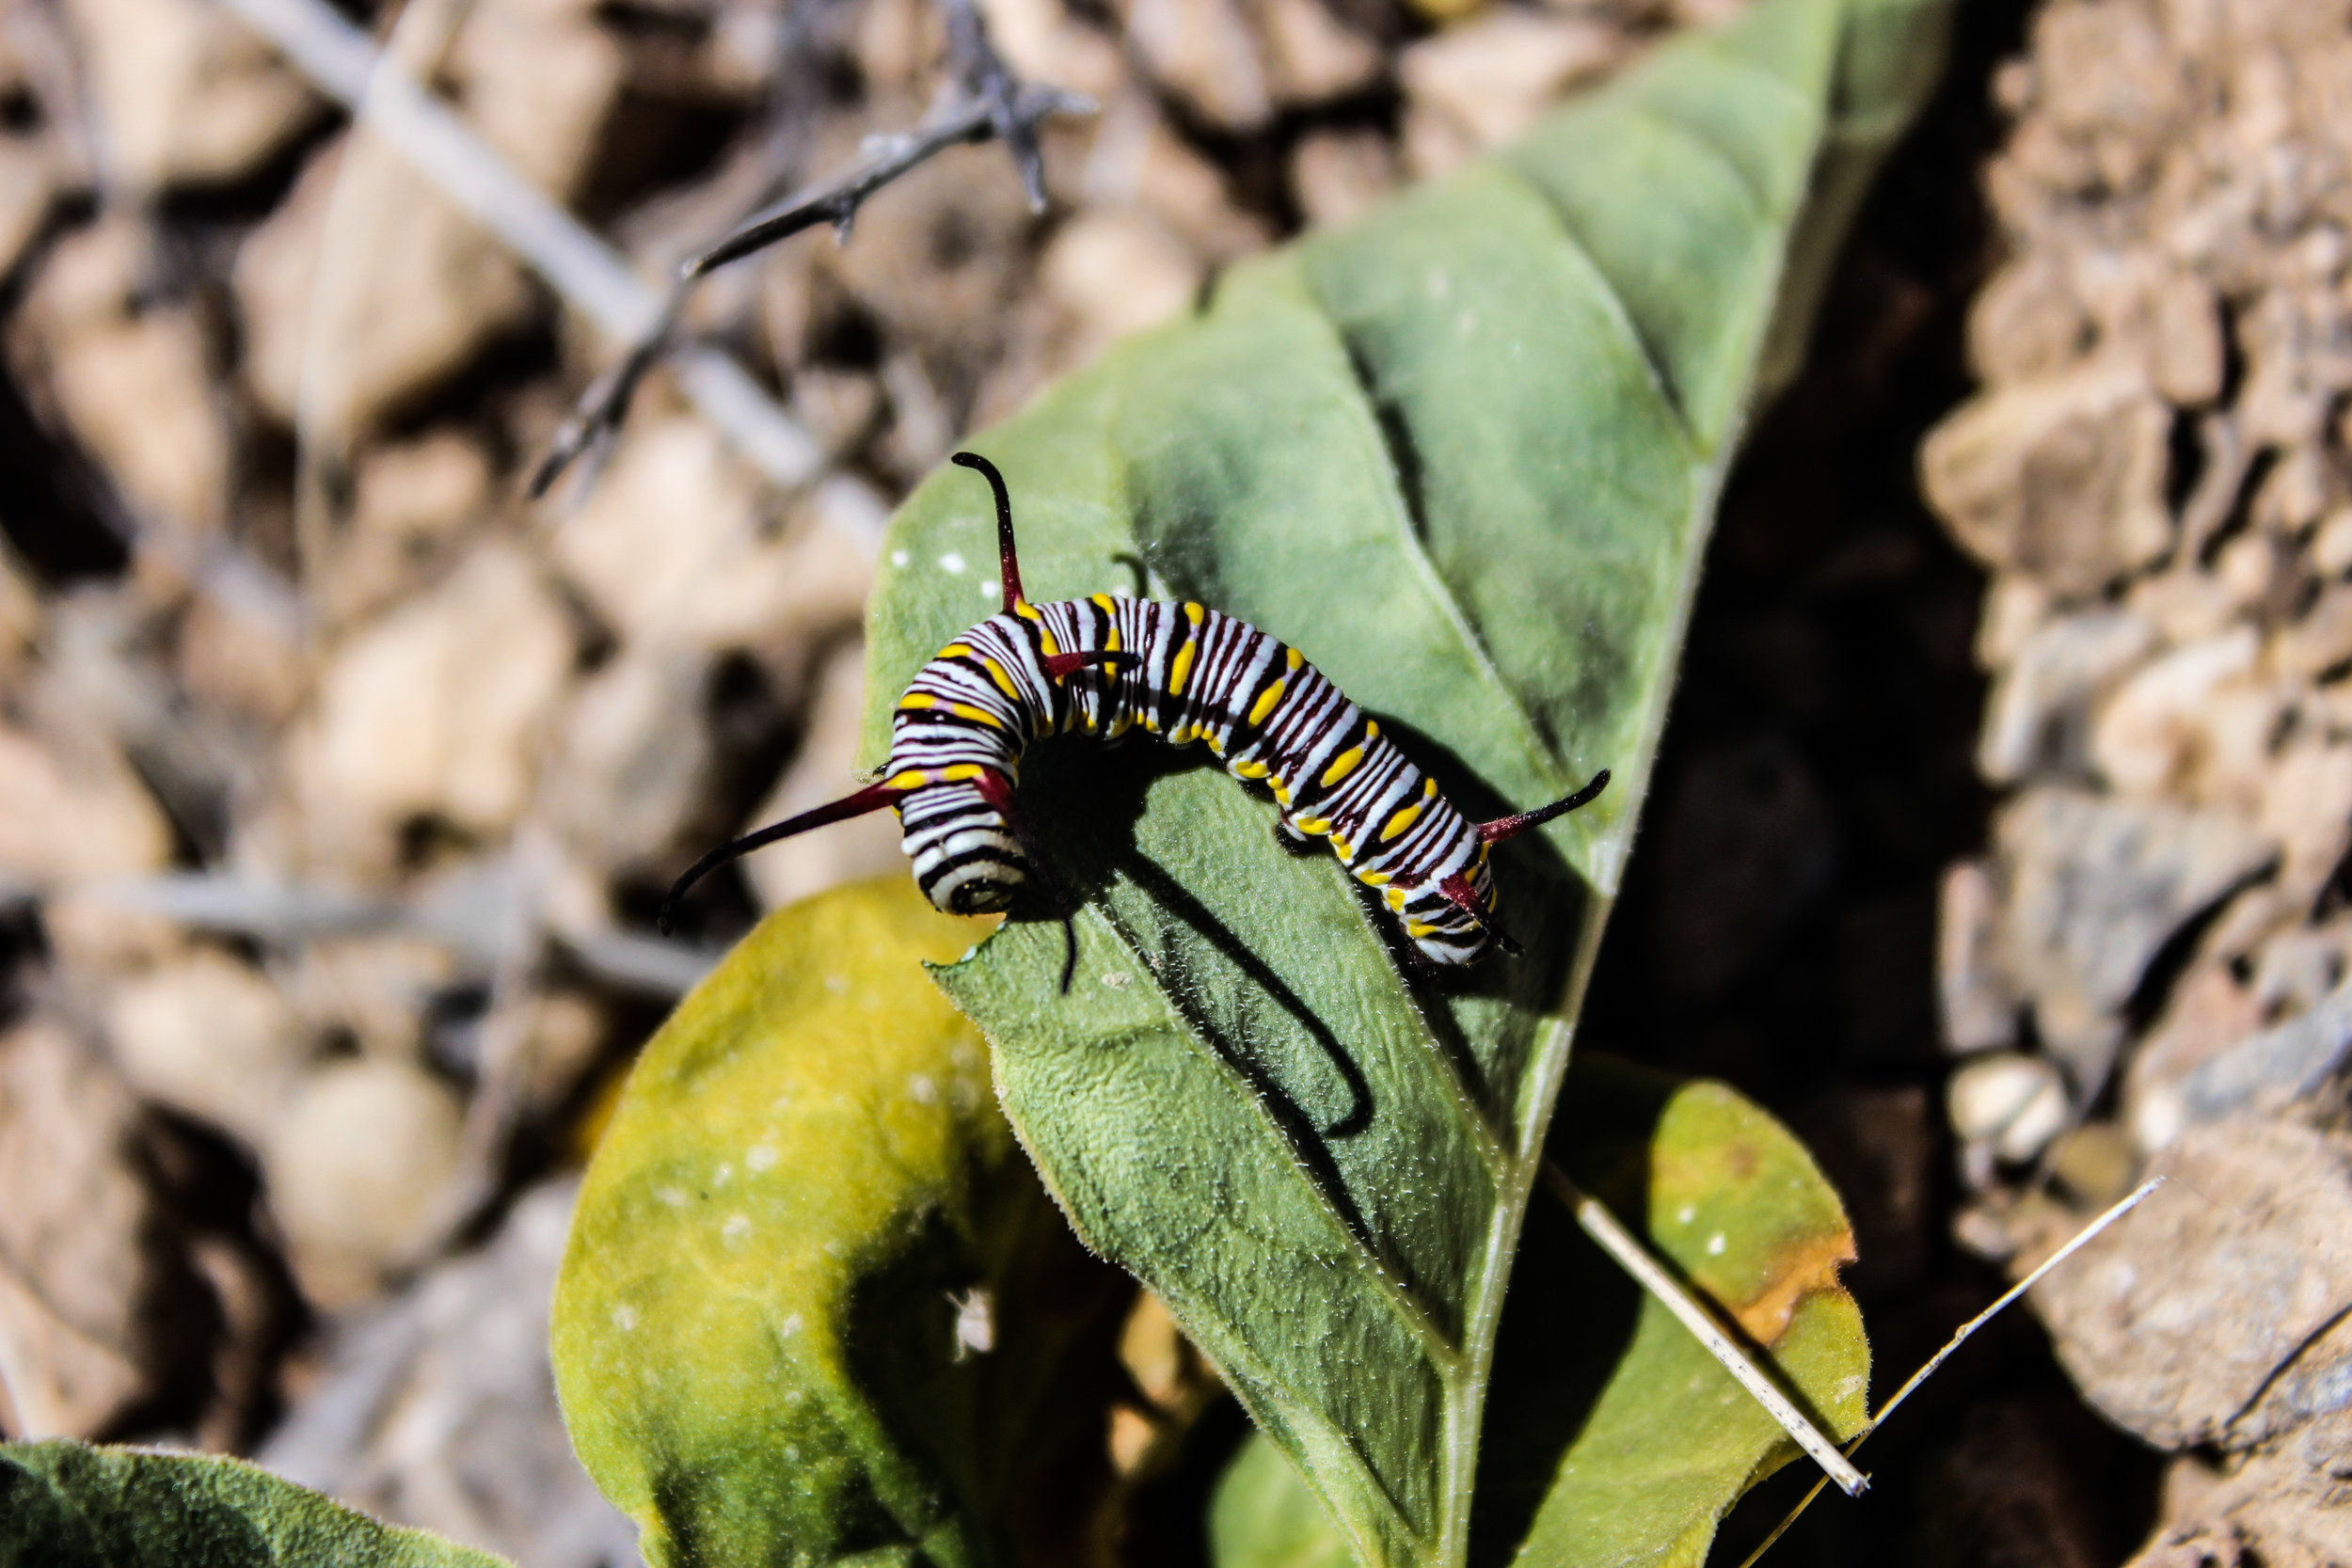 A queen butterfly ( Danaus gilippus ) caterpillar feeding on Mojave milkweed ( Asclepias nyctaginifolia ) at Ivanpah Solar Electric Generating System - one of the world's largest concentrating solar facilities - Mojave Desert, USA. Photo by Steve Grodsky.